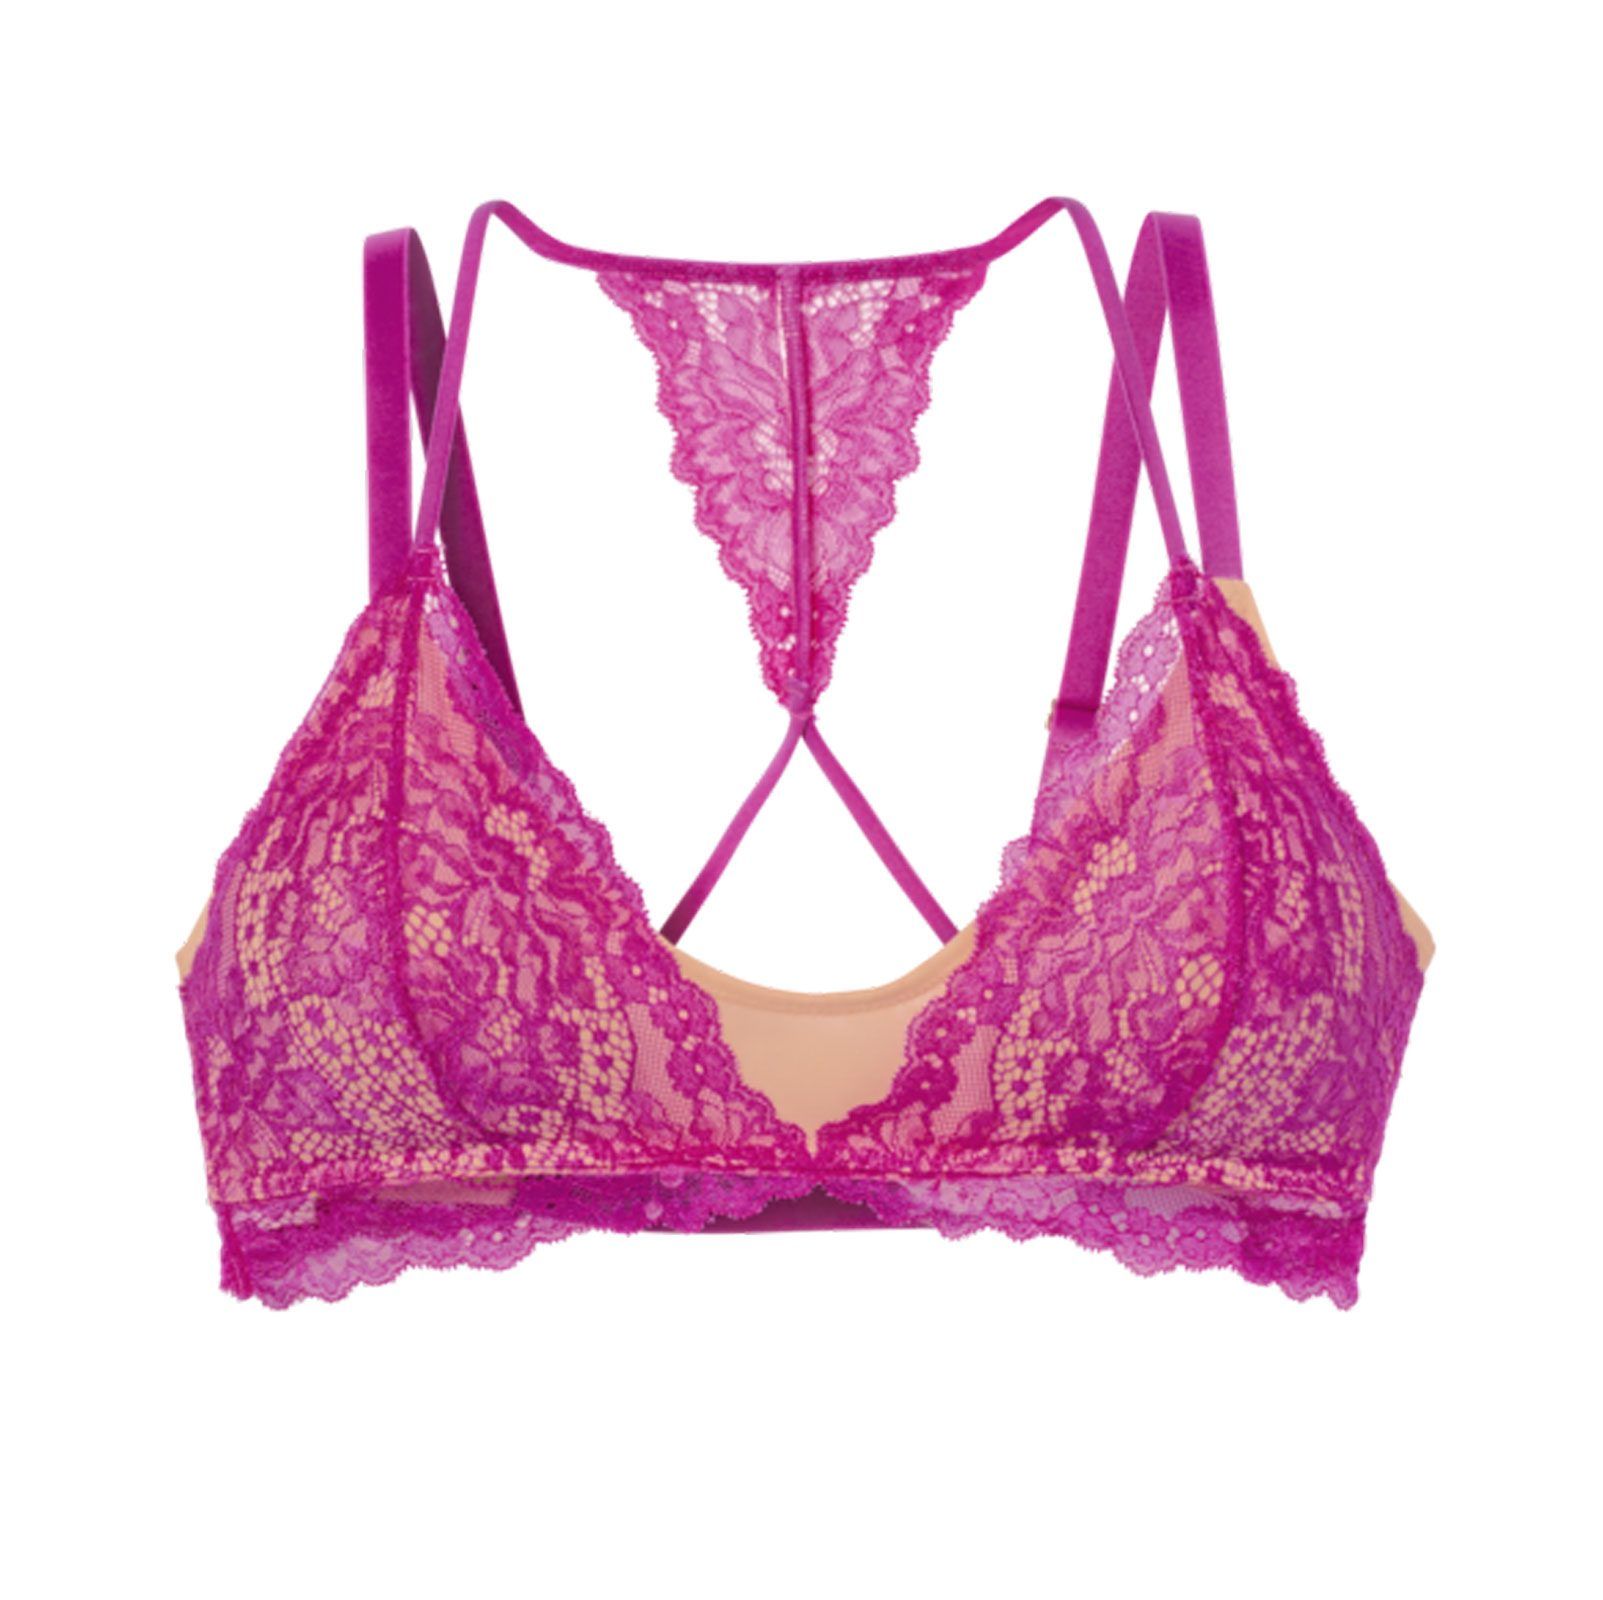 TellTale The Lover Lace Bralette